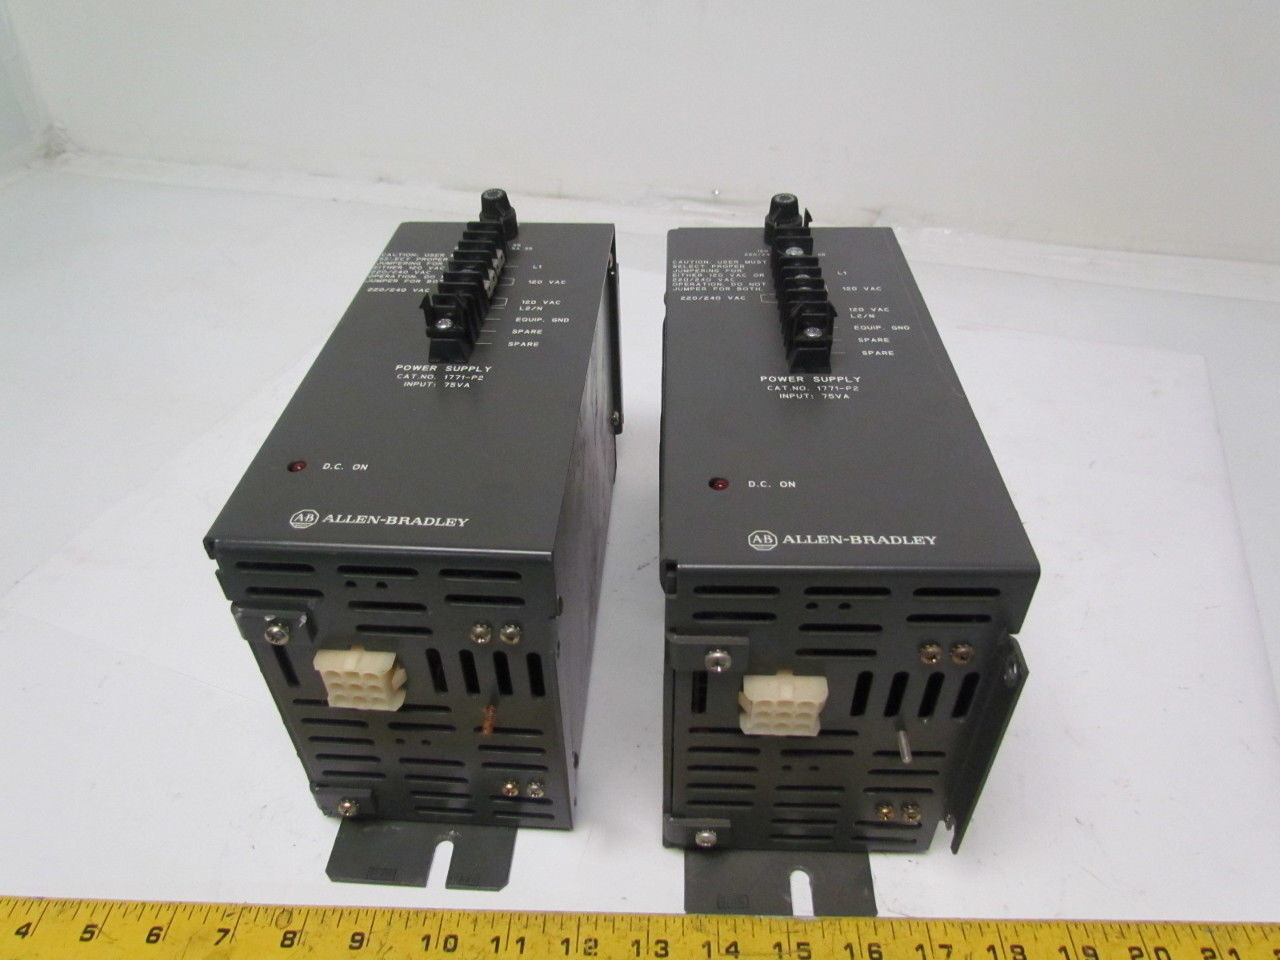 Allen-Bradley 1771-P2 Auxilary Power Supply 120/220VAC 1/0.5A Lot of 2